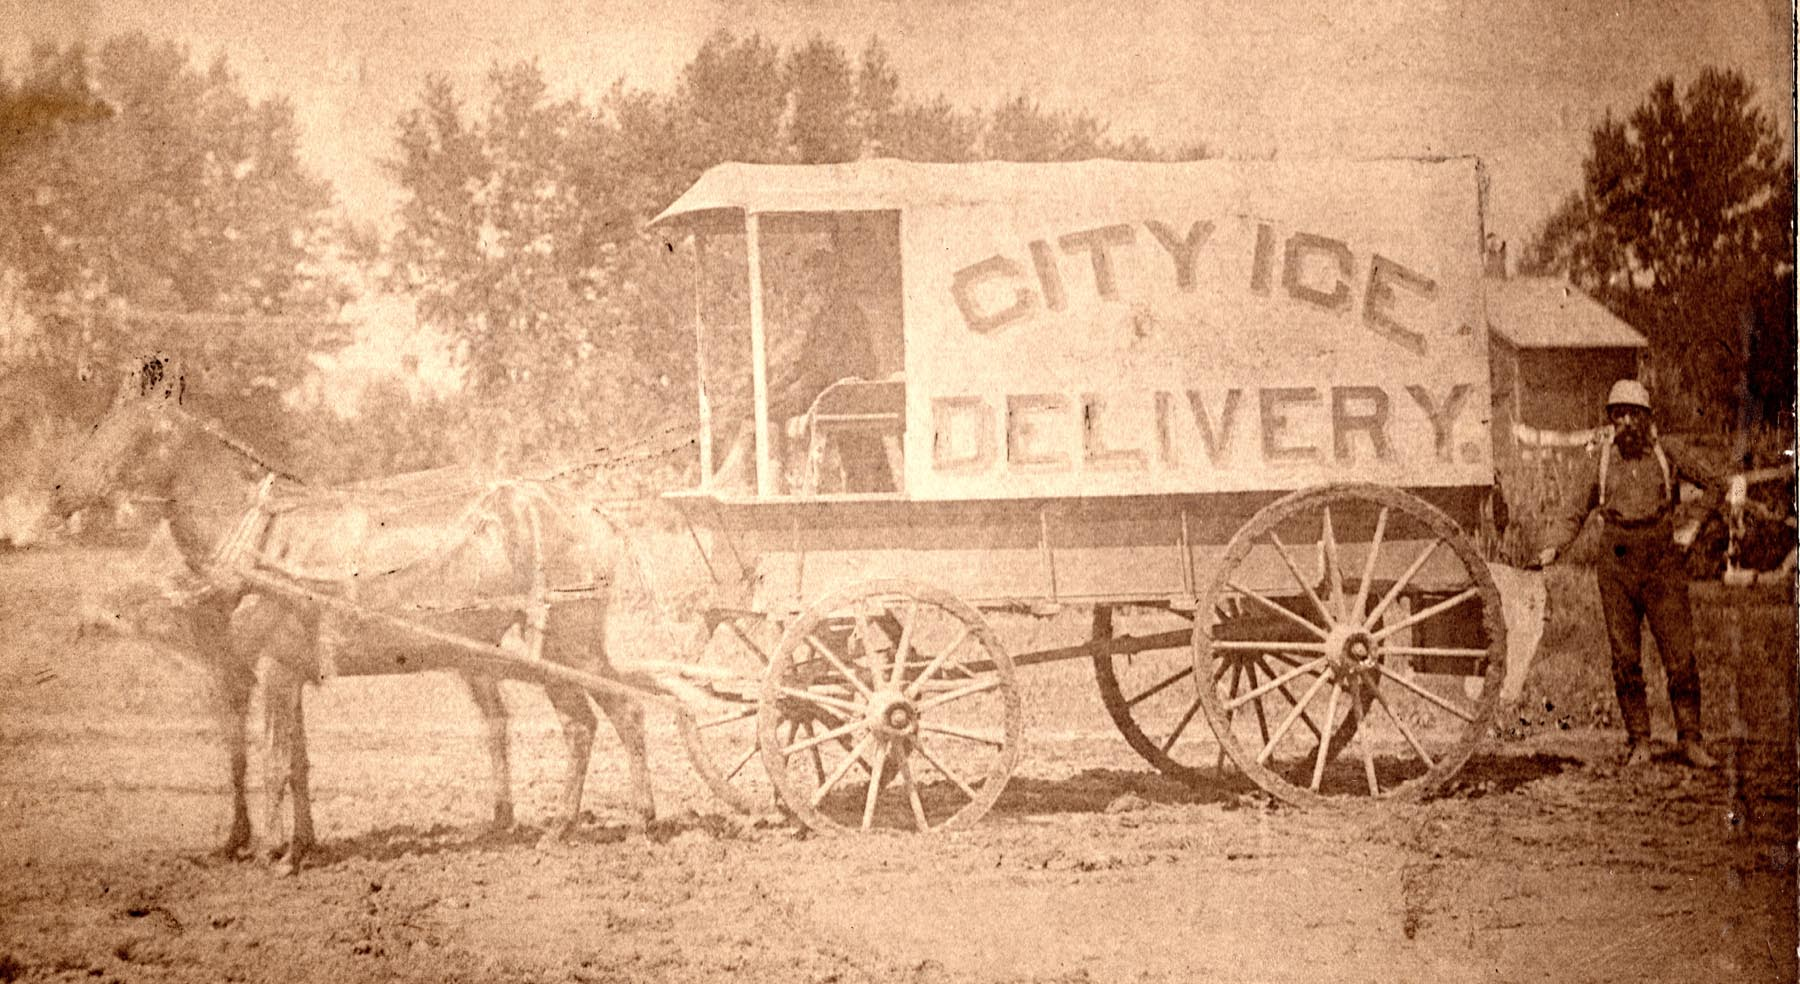 img097- CITY ICE DELIVERY, 1888, C. F. EVANS, PROPRIETOR